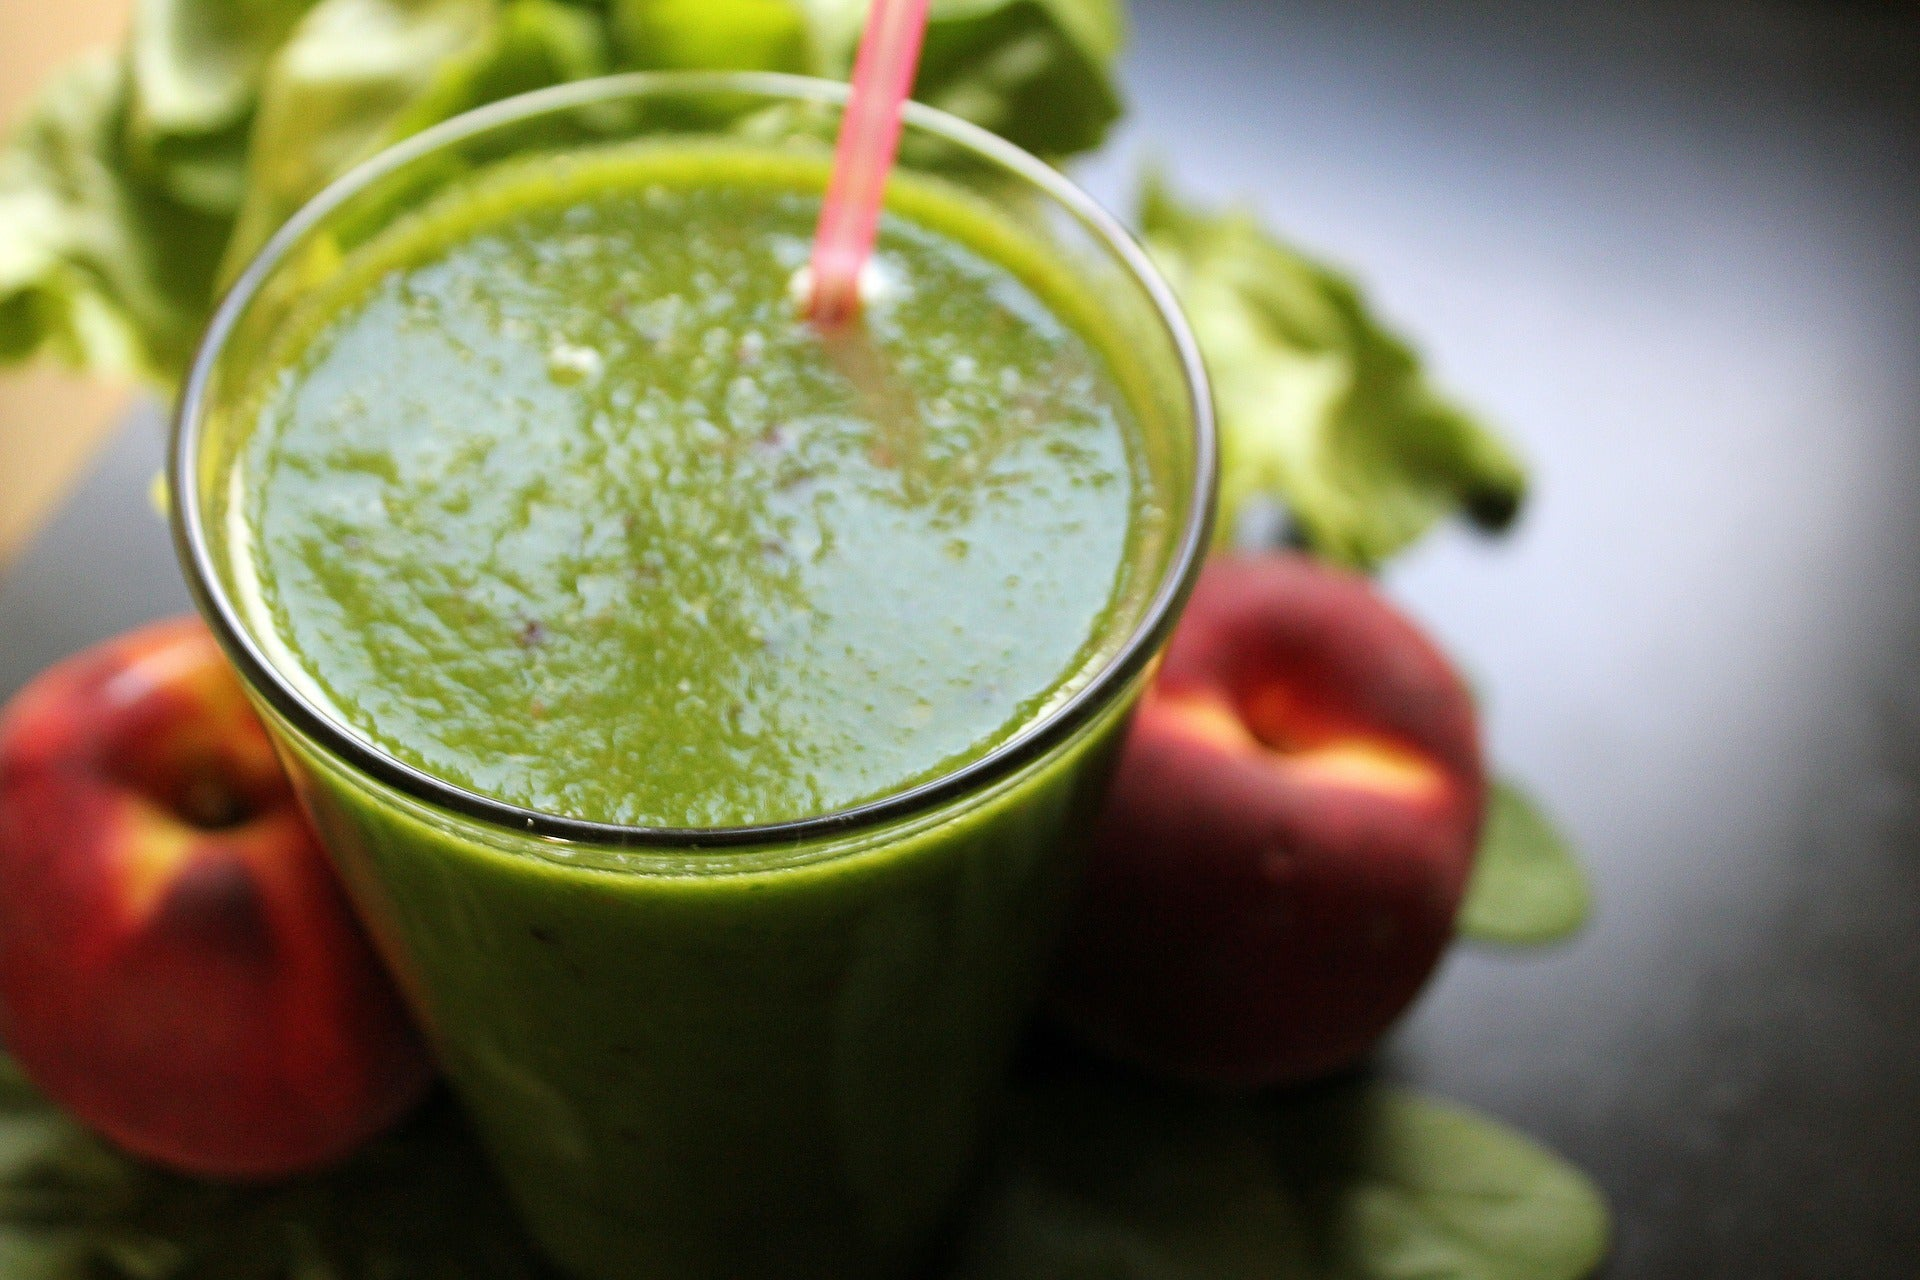 Get Glowing Green Recovery Smoothie [RECIPE]